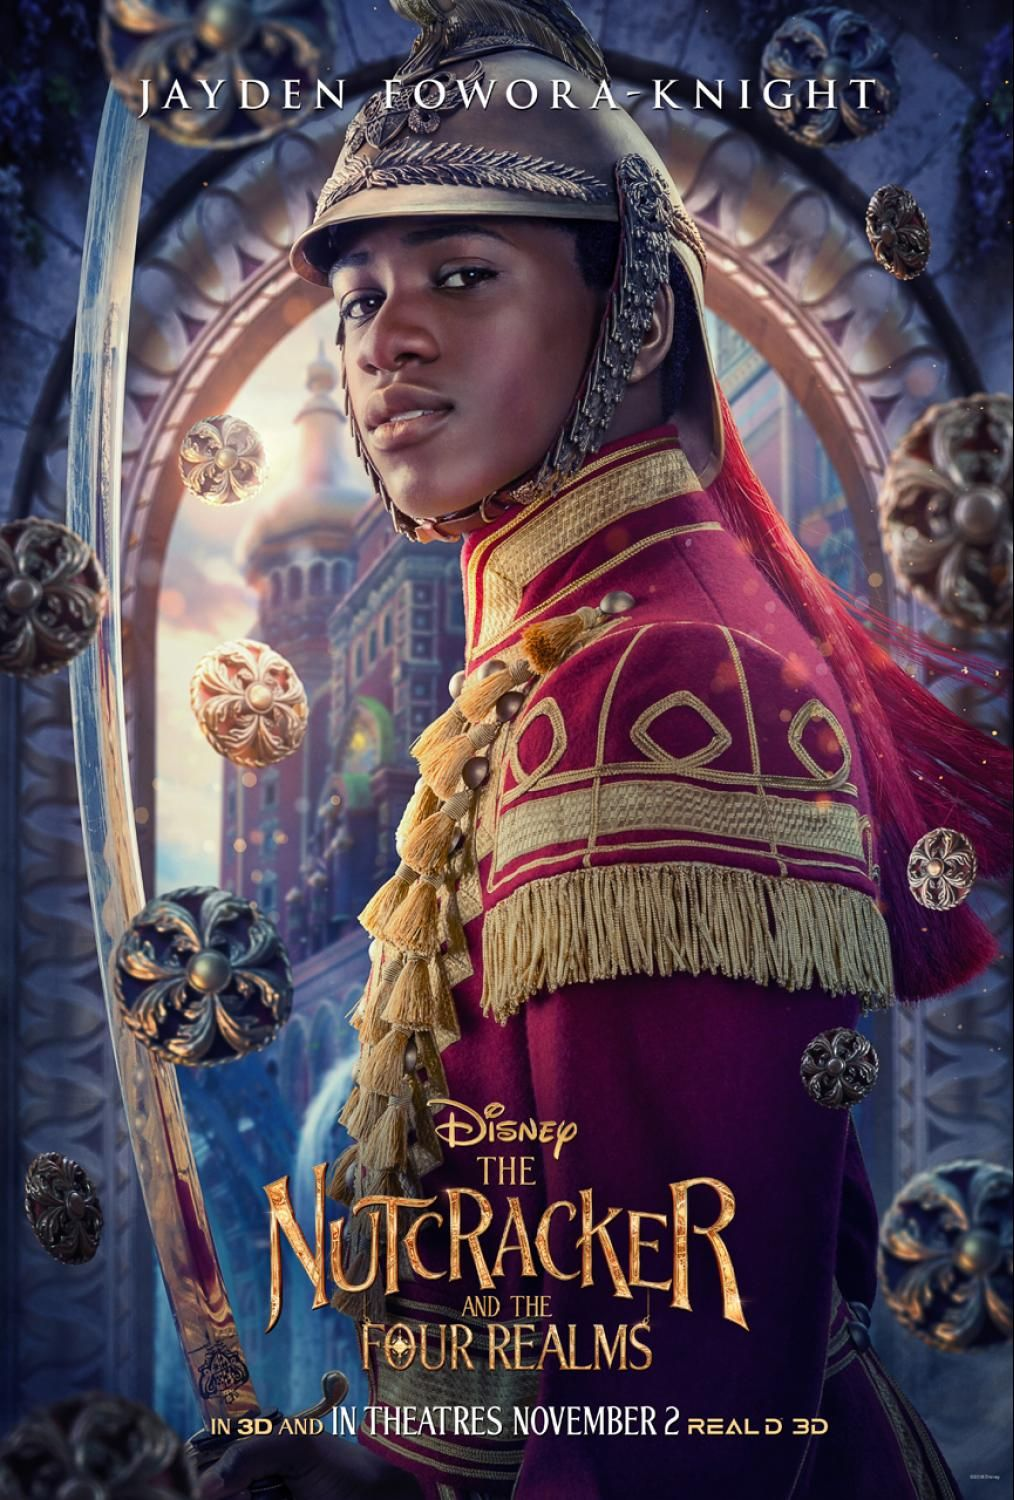 Fresh Look And Sneak Peek At The Nutcracker And The Four Realms